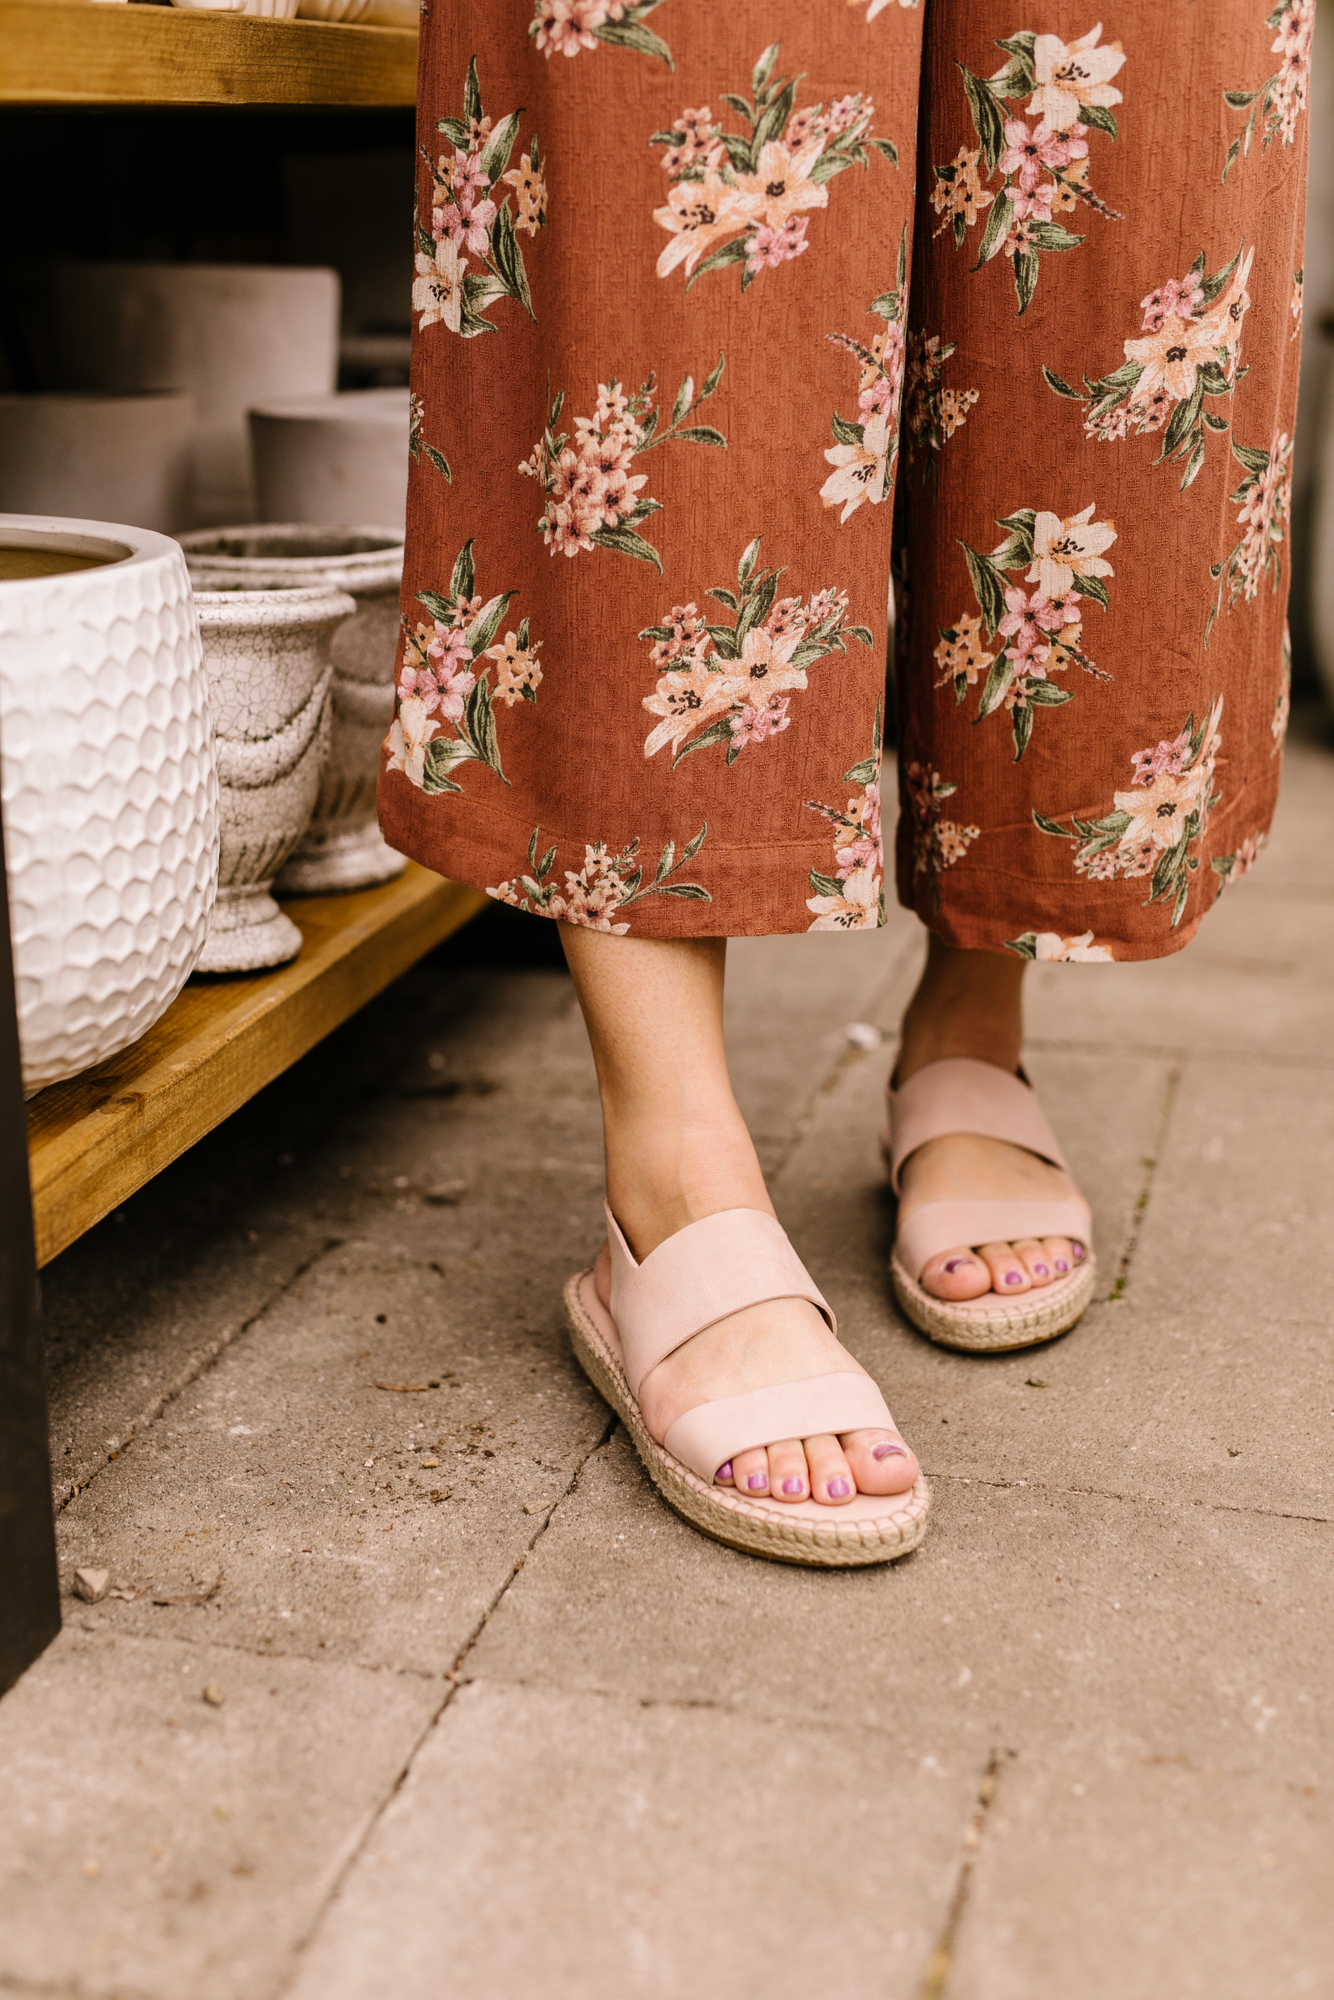 88c5439c11 The Cole Haan Cloudfeel Espadrille Sandal comes in 4 colors. I went with  Mahogany Rose which is a really pretty blush pink. I'm always a firm  believer that ...